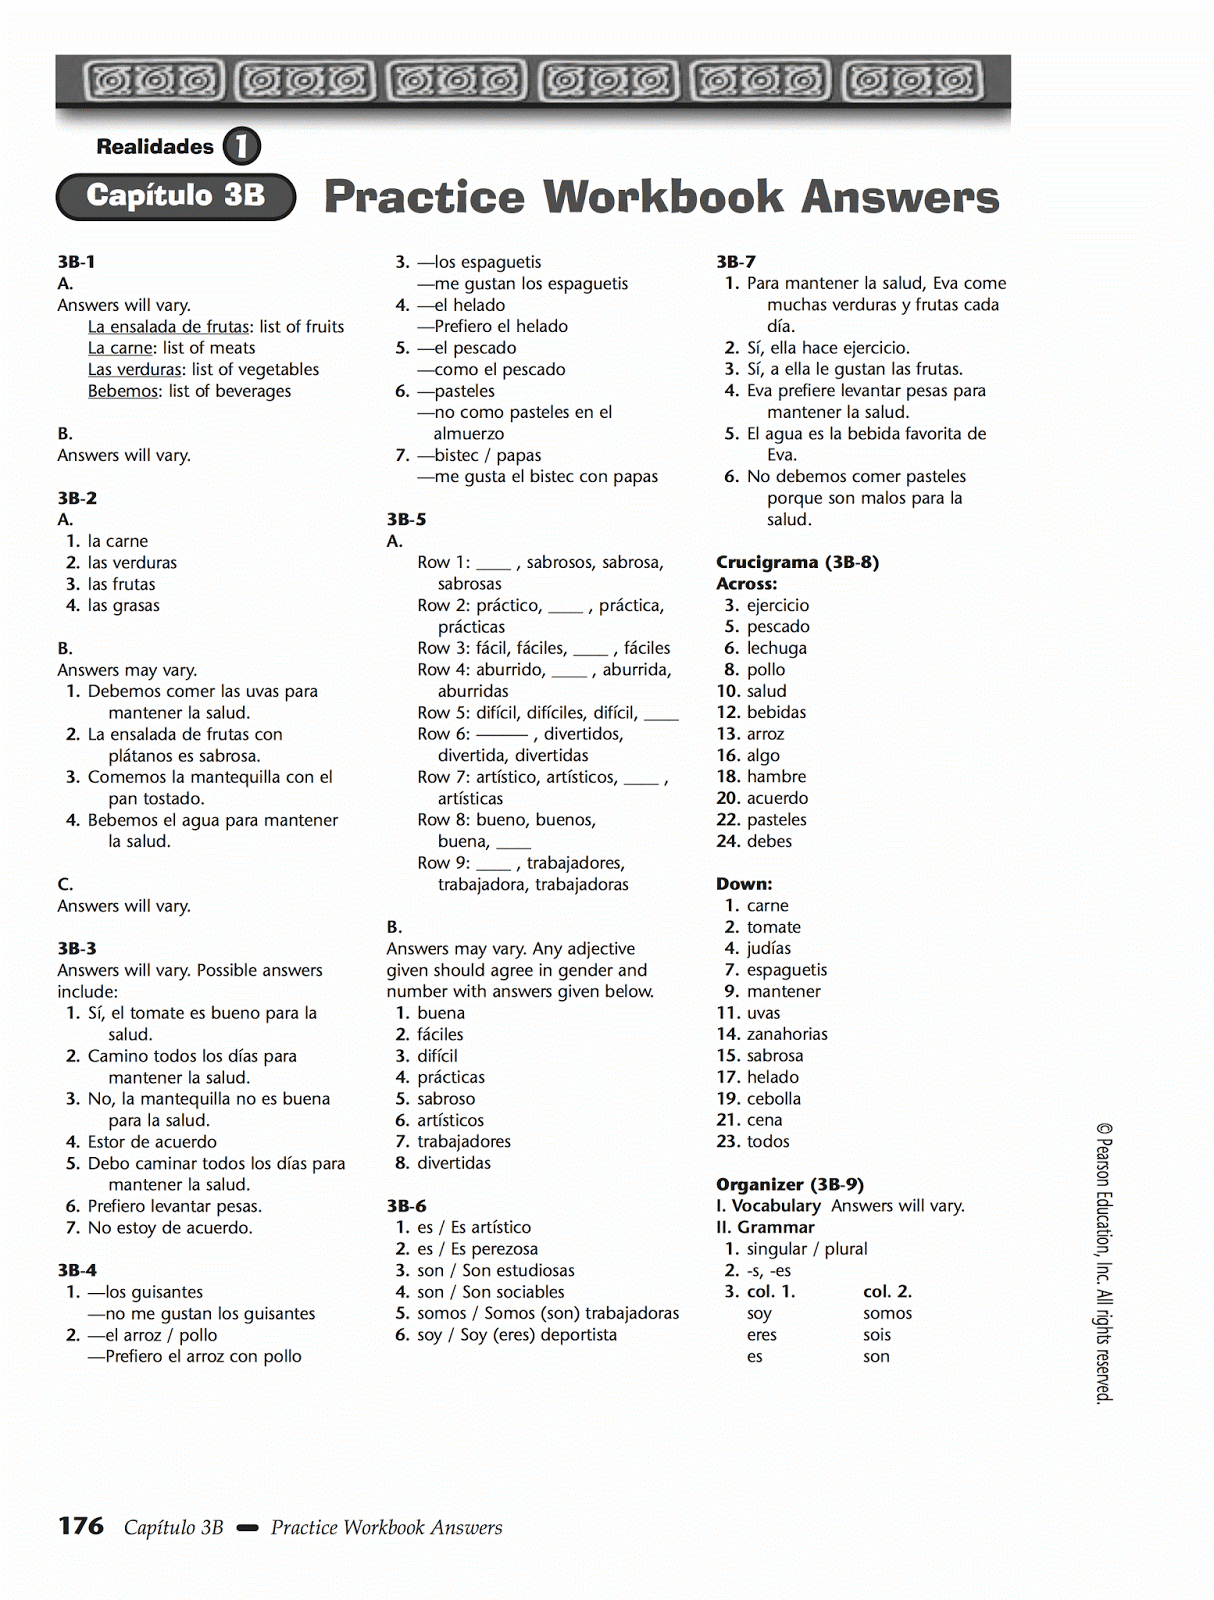 2 Worksheet Answers - Cockpito